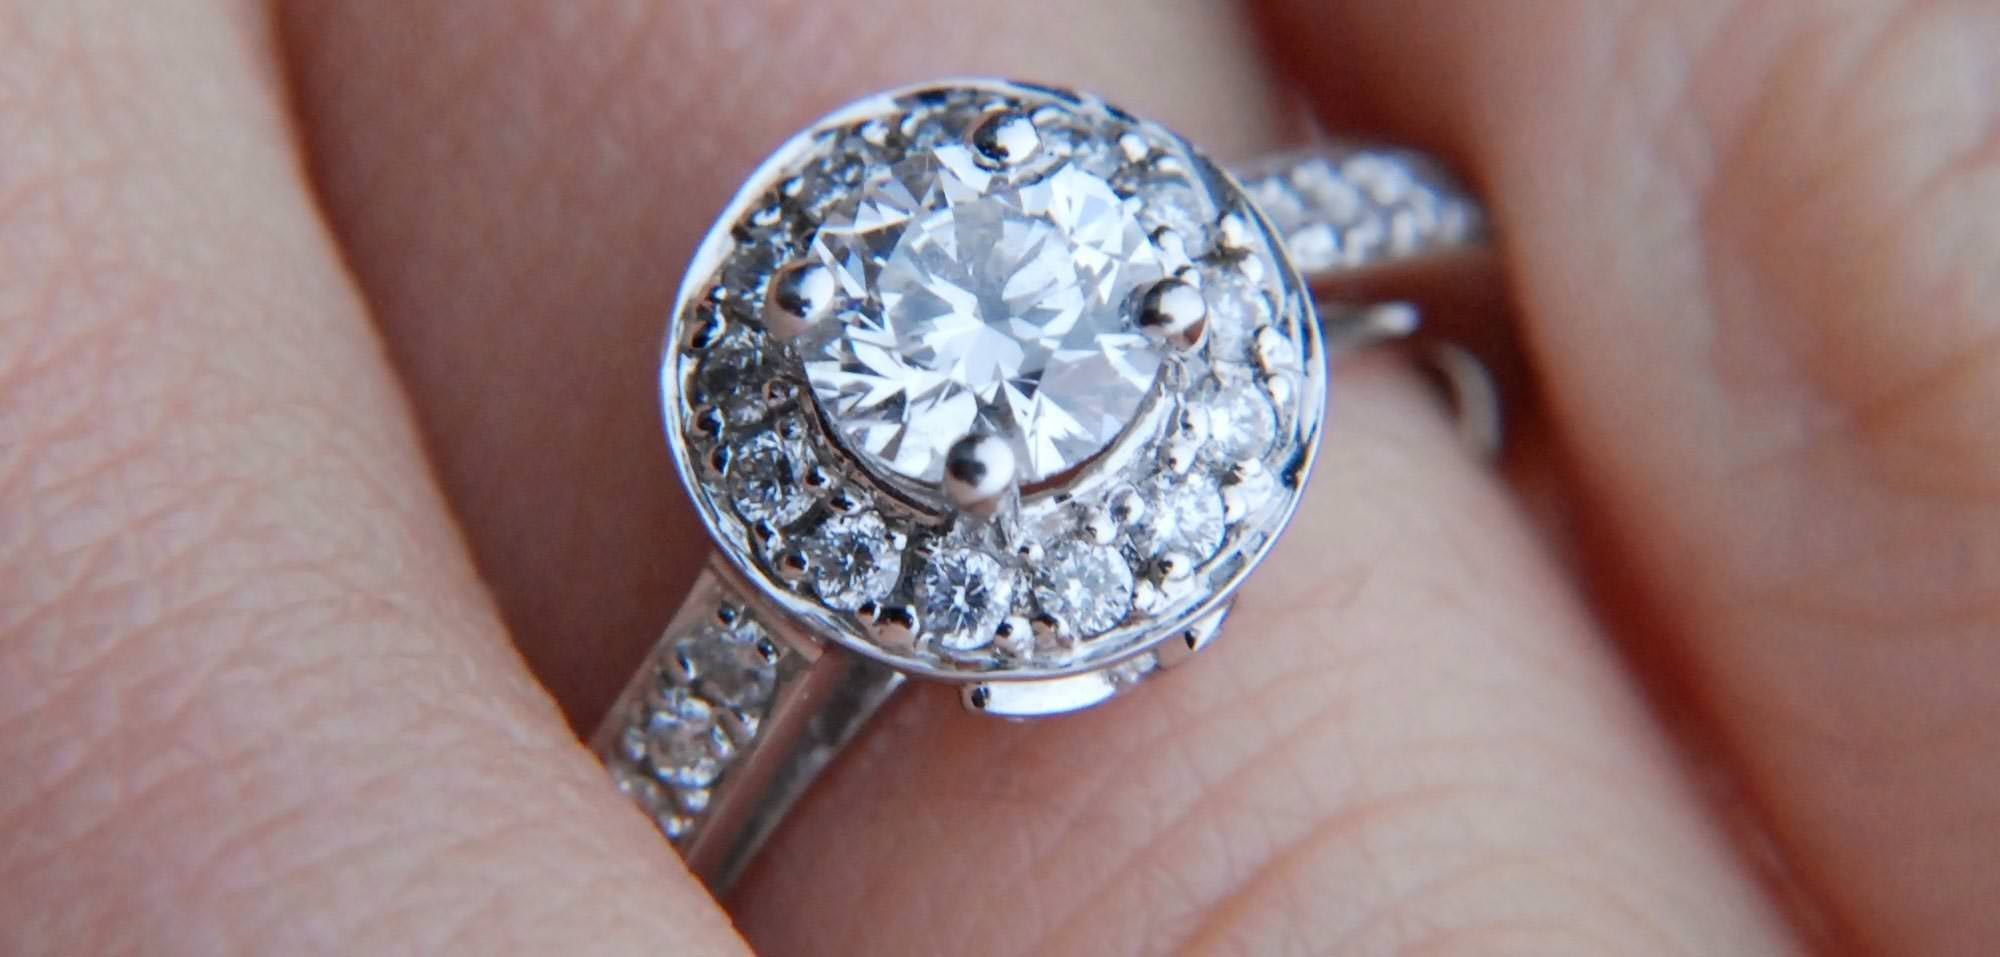 tips how buy say guide they to ring an engagement make yes colorless diamond sure rings